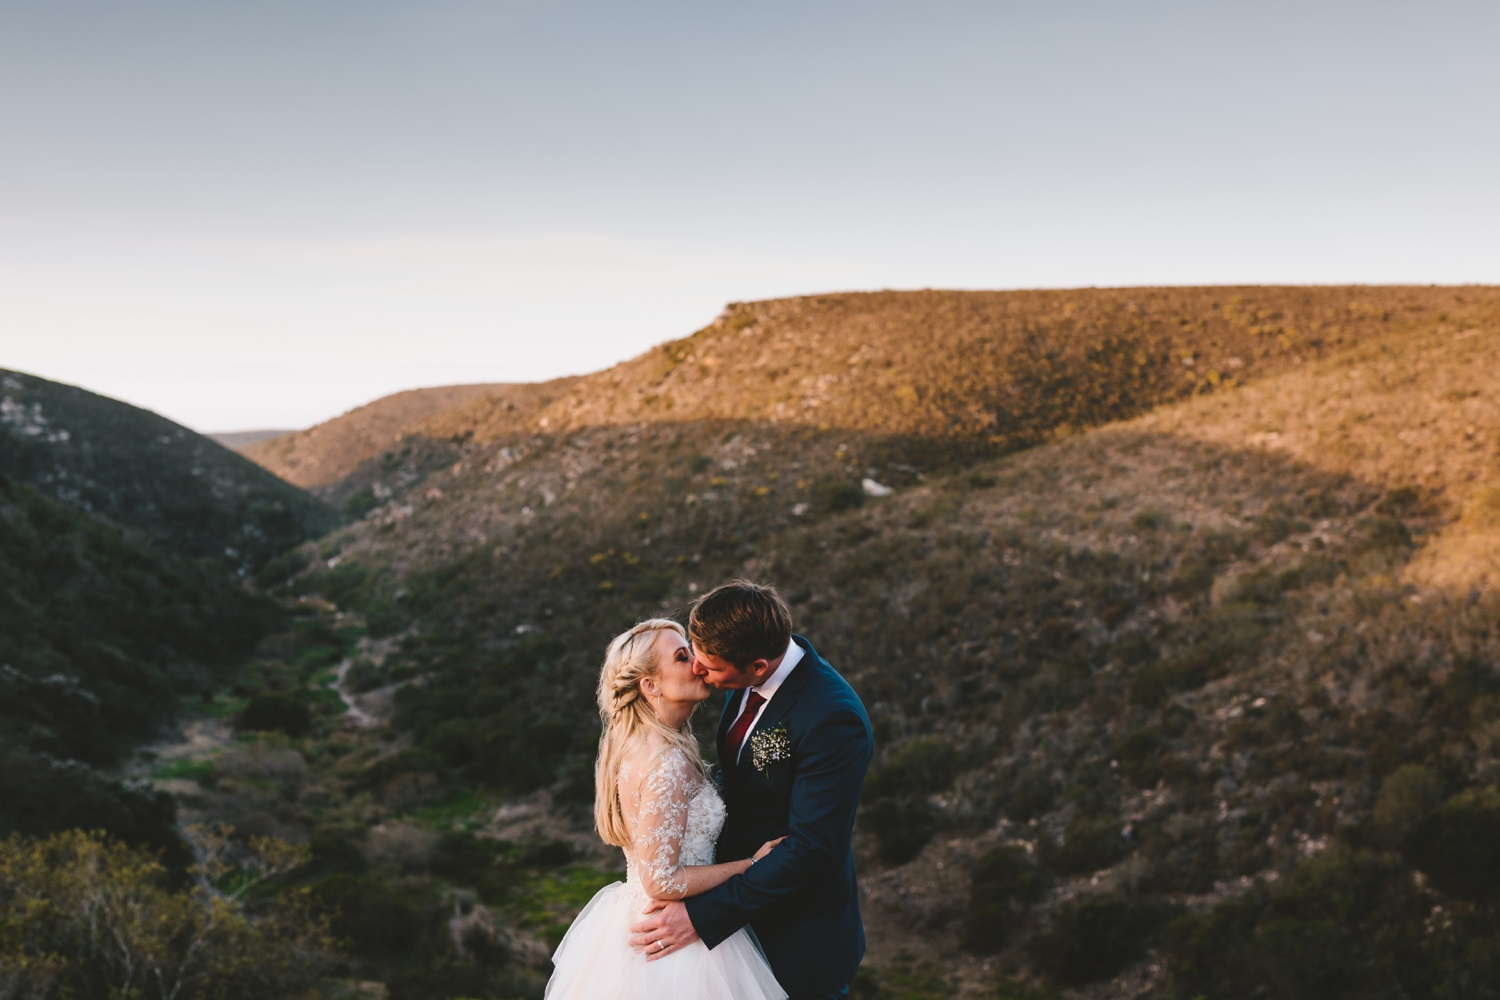 cathryn_warwick_wearecharlieray_hopewell_conservation_eastern_cape_wedding_0103.jpg